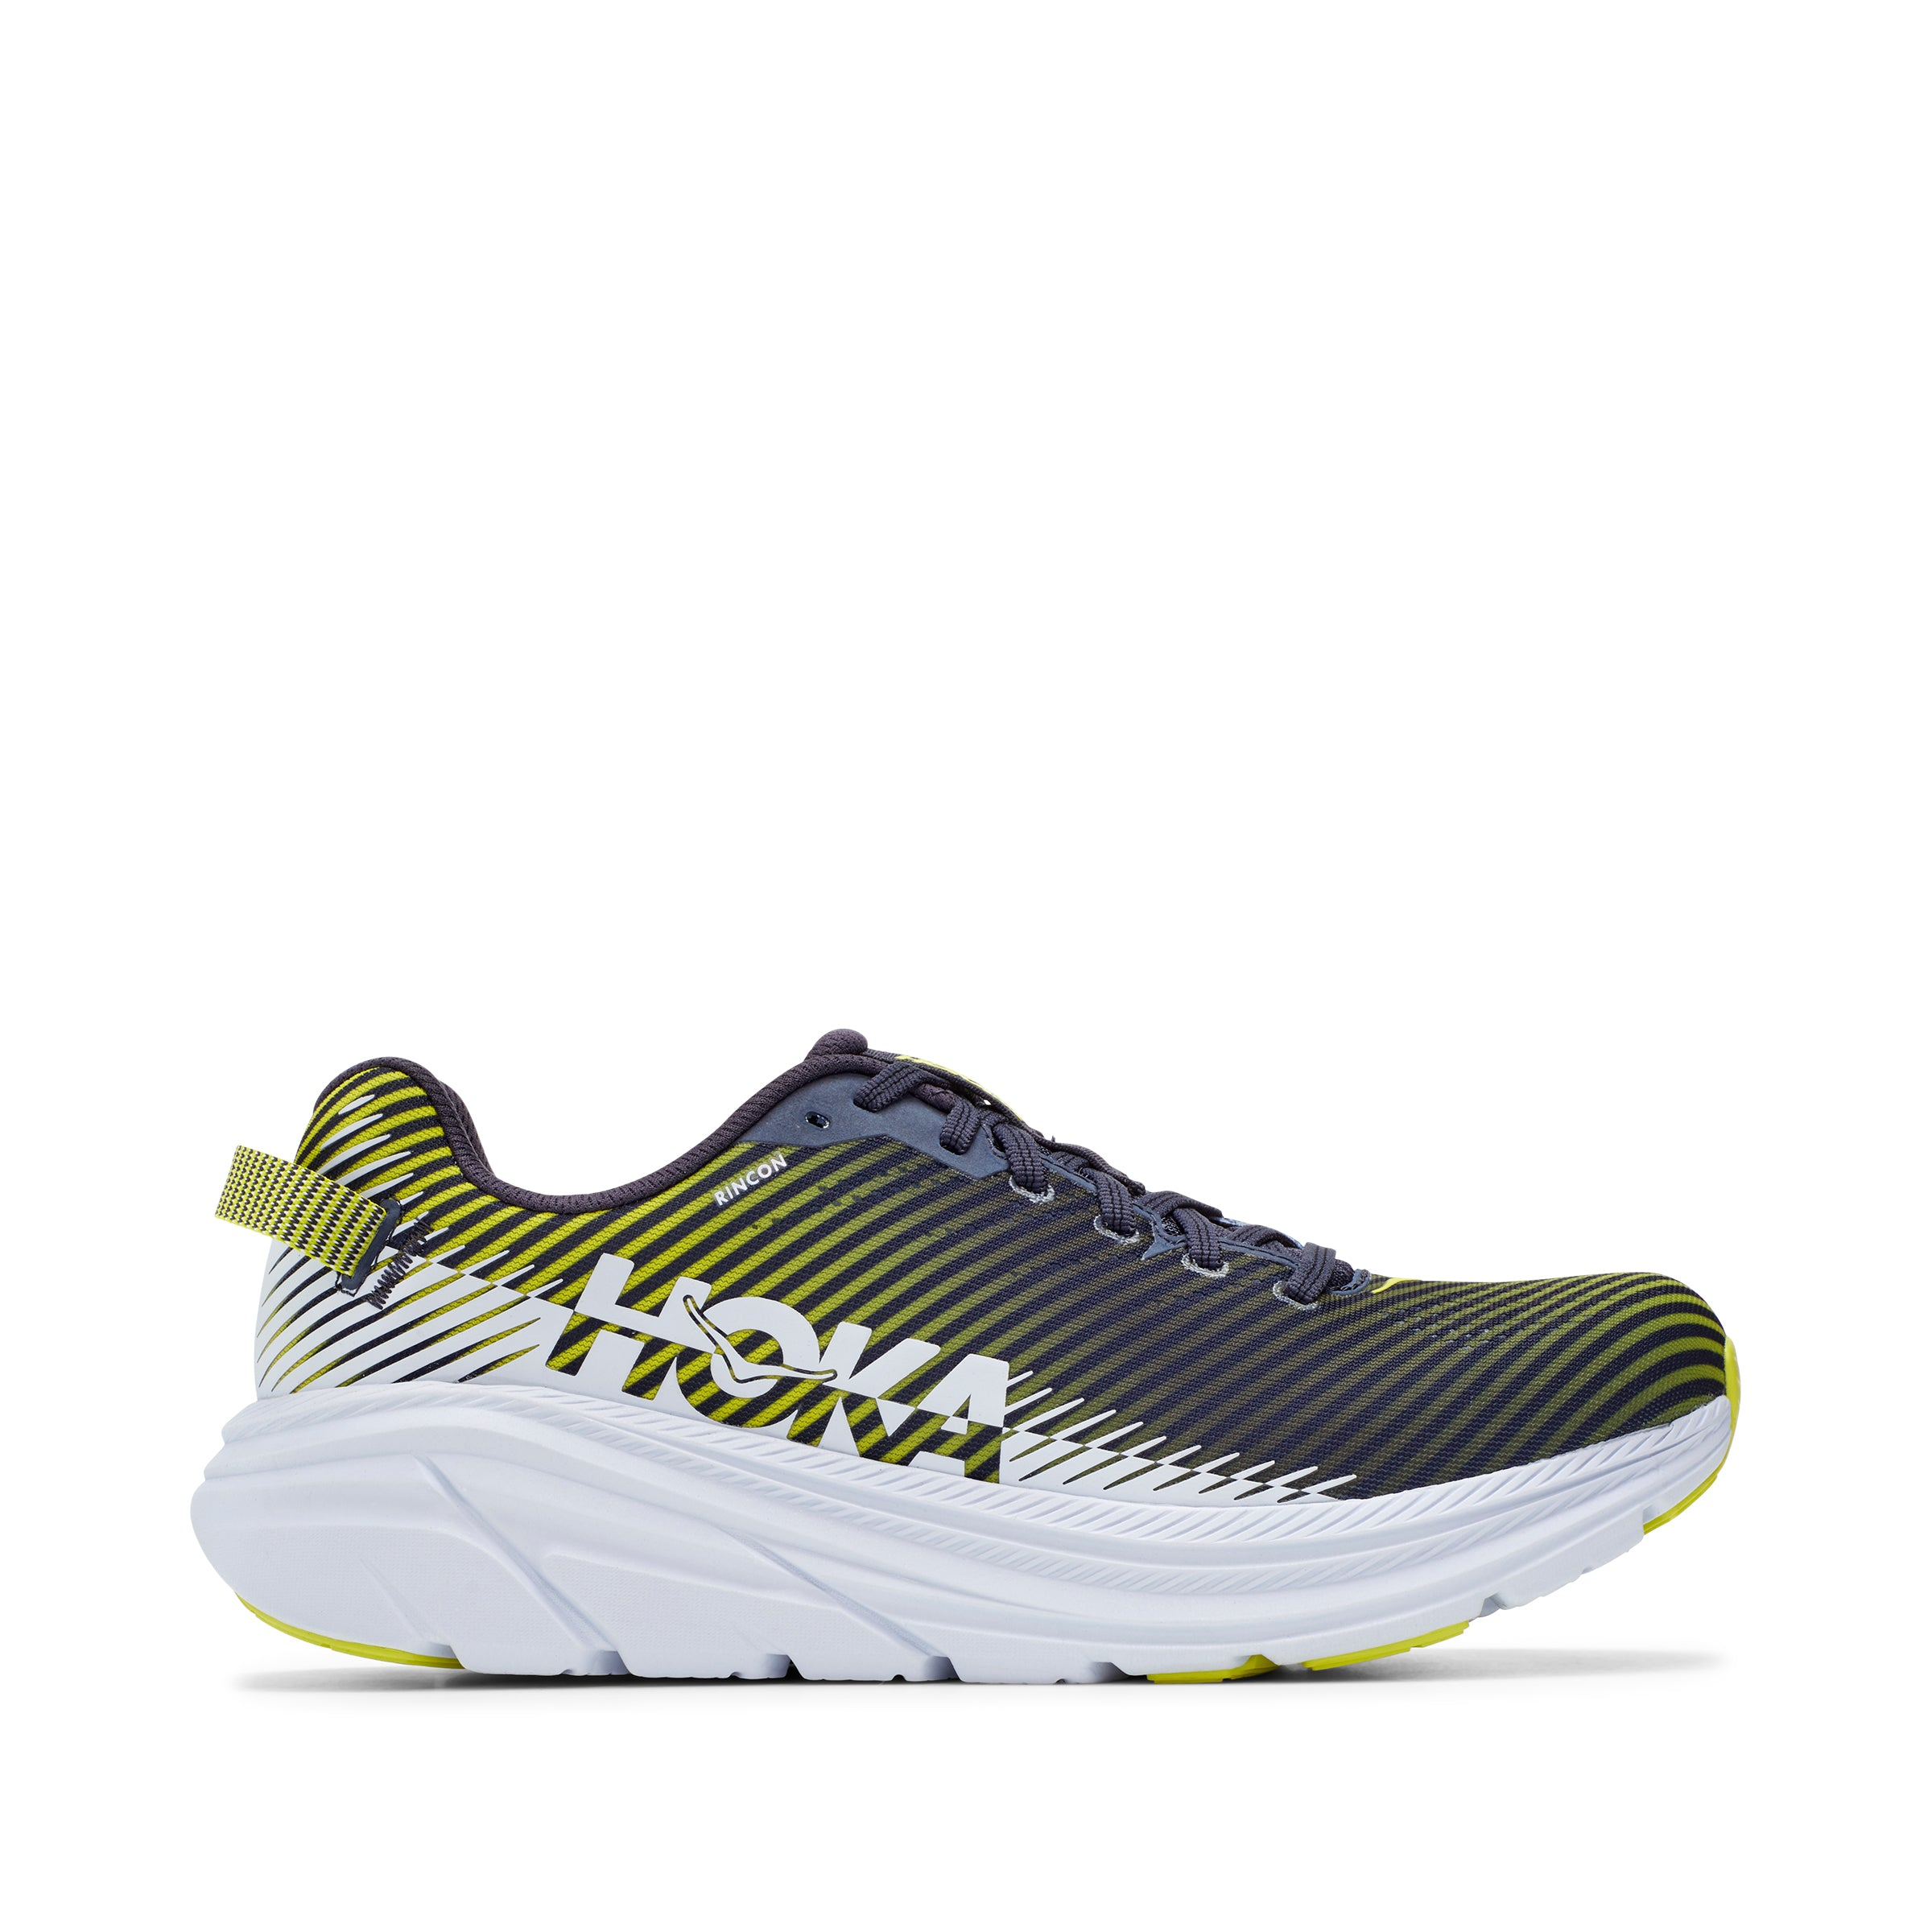 Men's Rincon 2 (OGWT - odyssey grey/white)